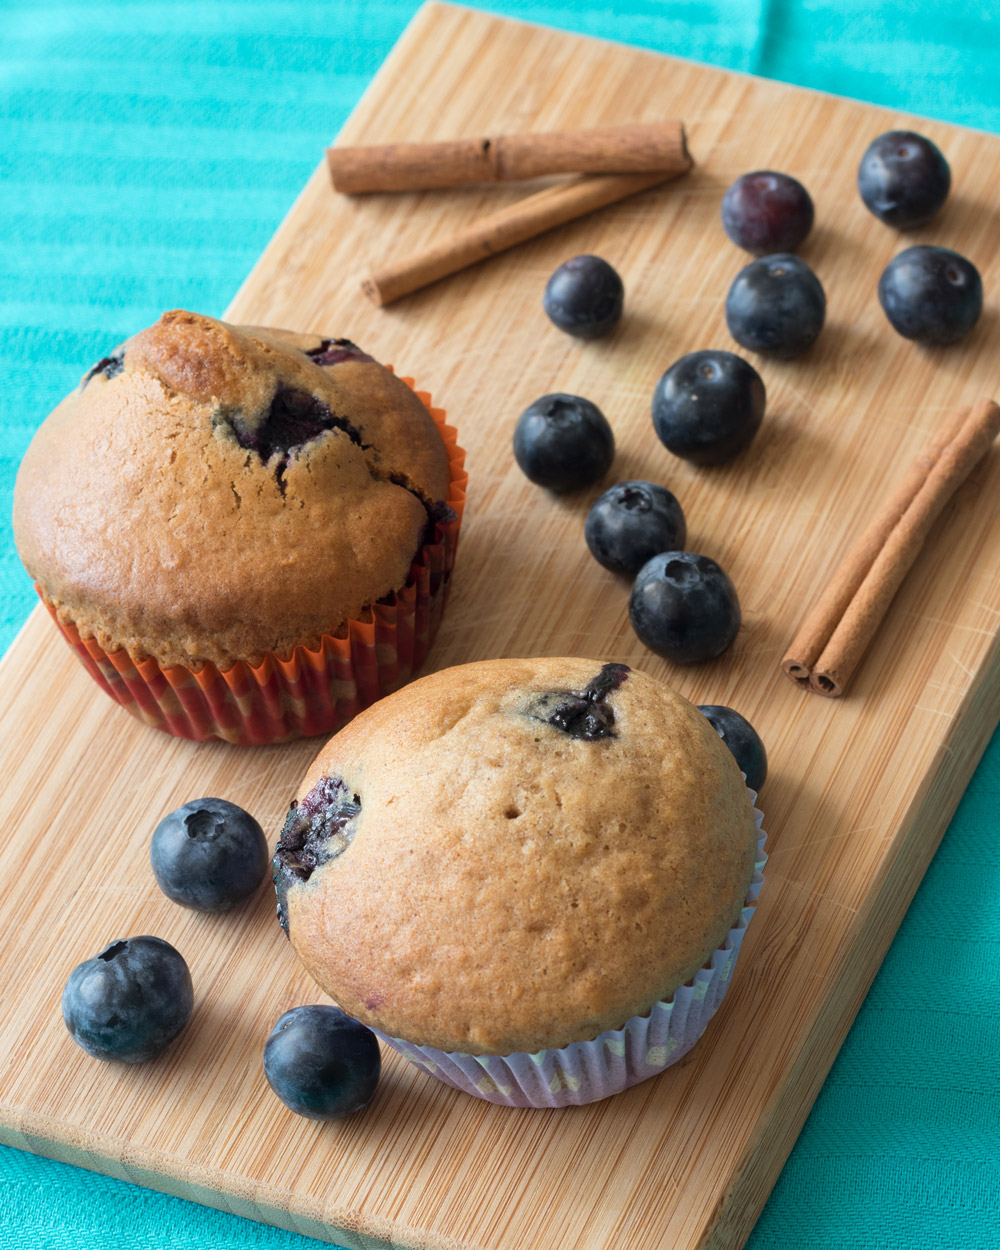 Food Photography - Blueberry muffin with a cinnamon twist